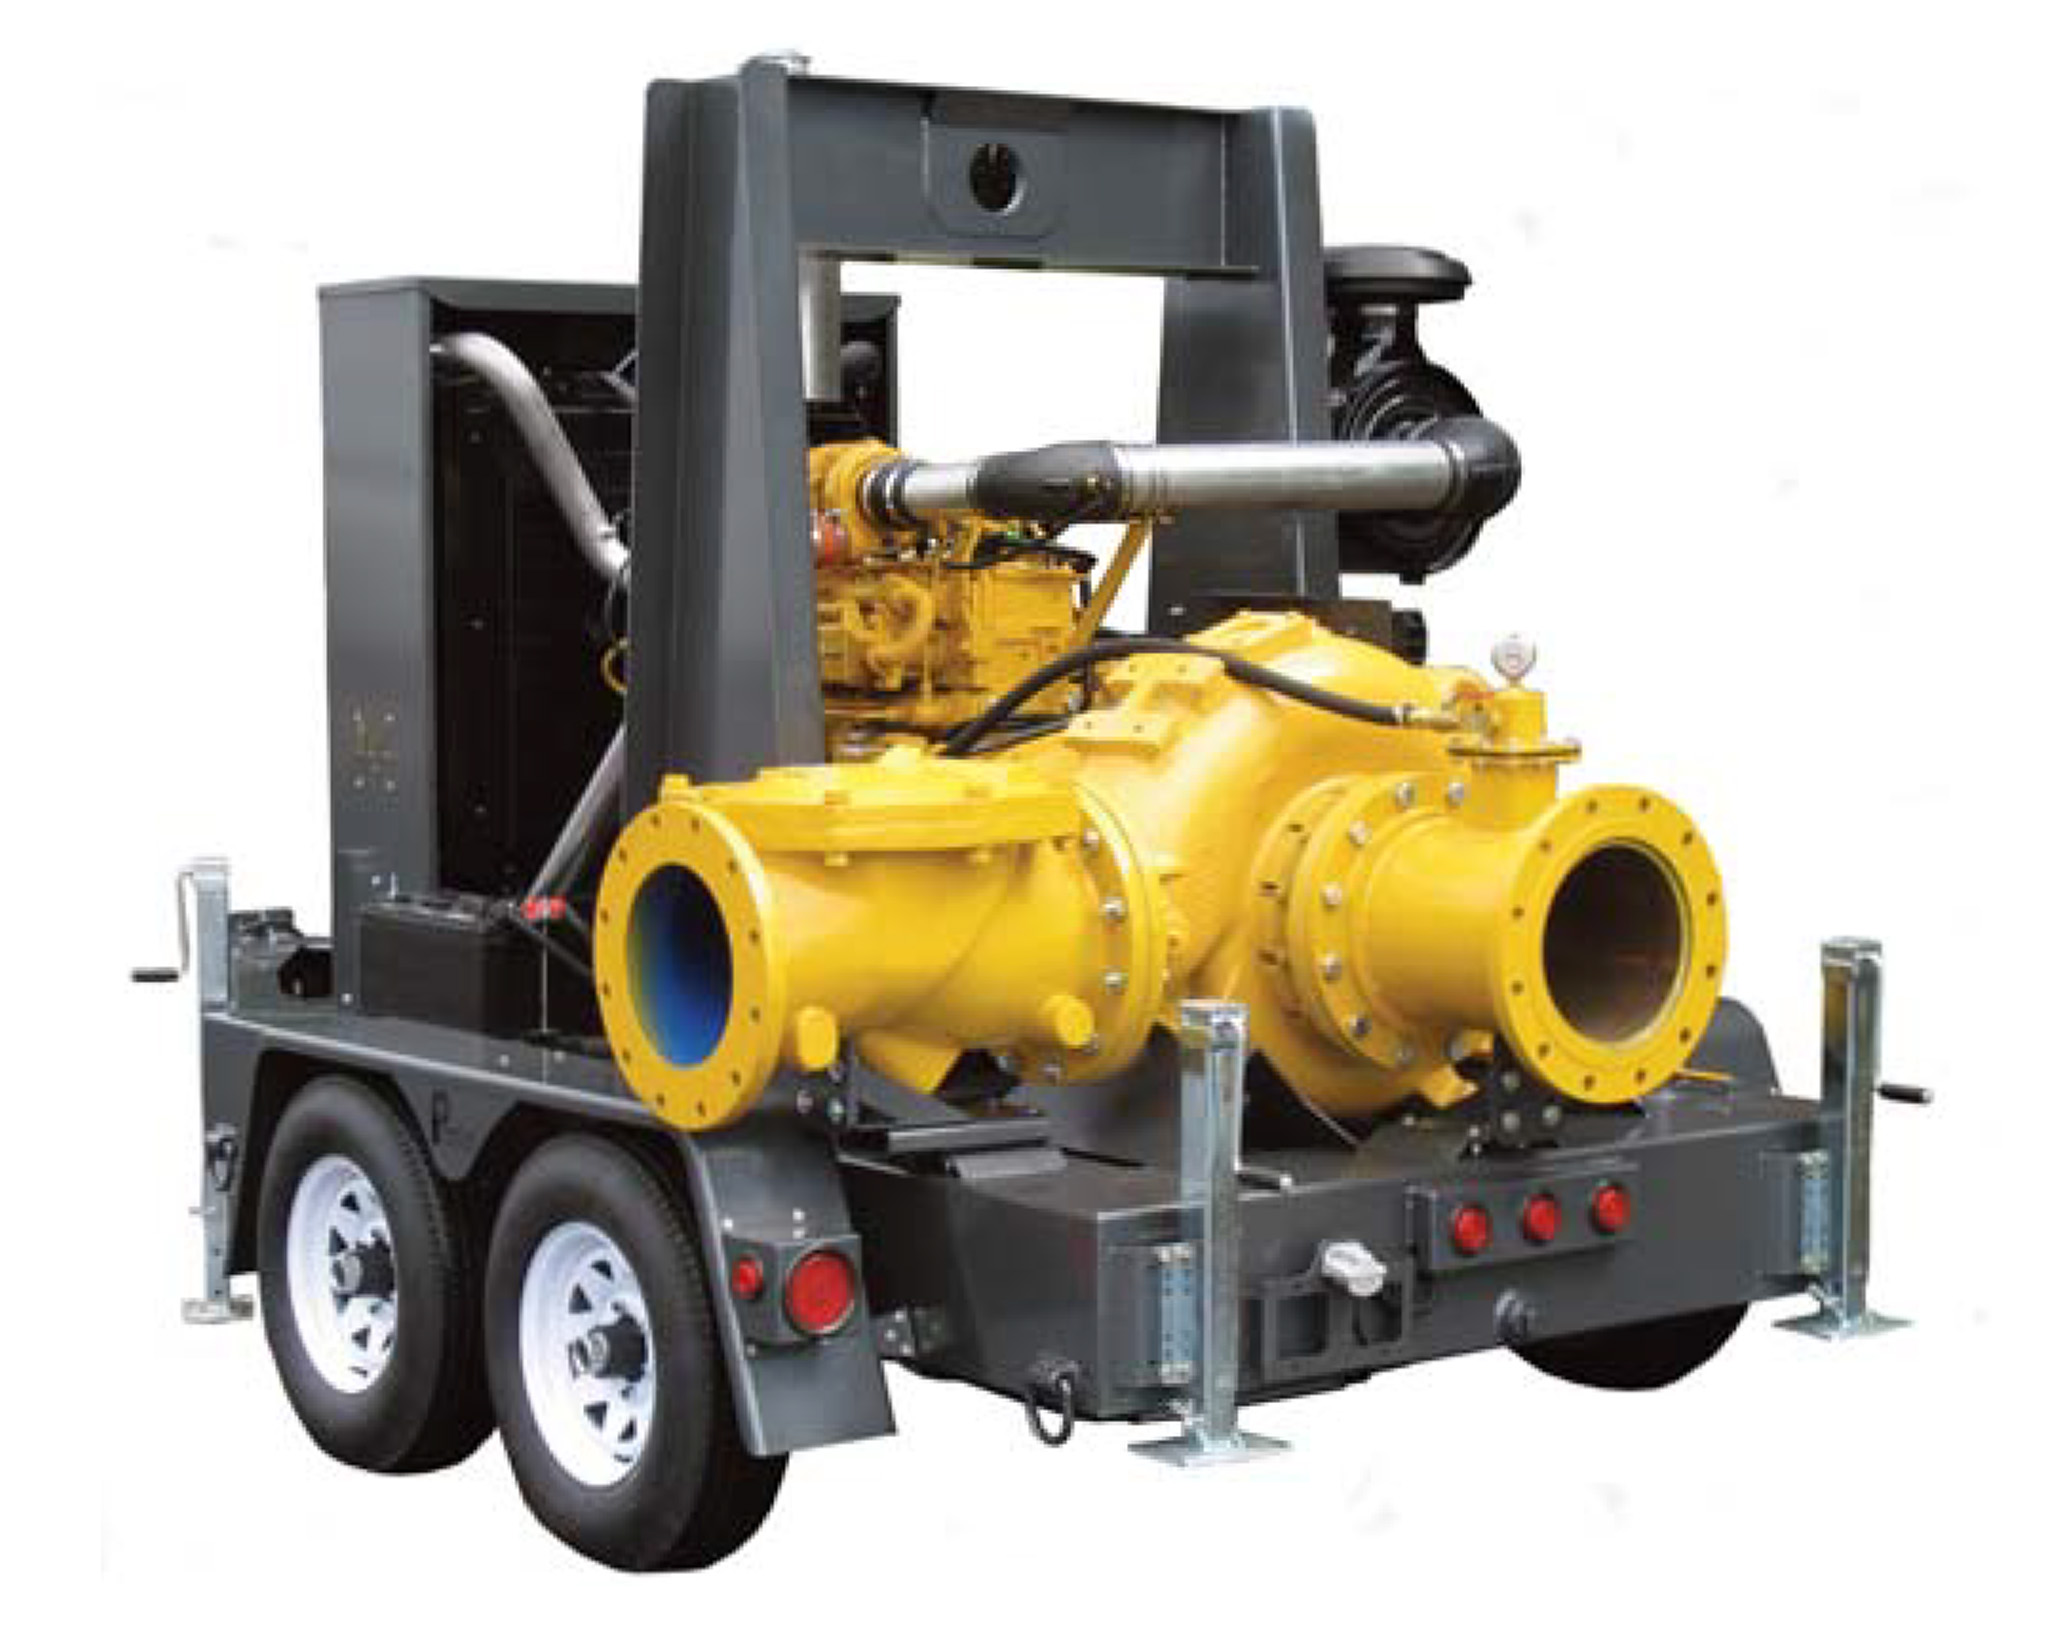 Premier Pump & Power Specification: Premier Pump & Power LLC